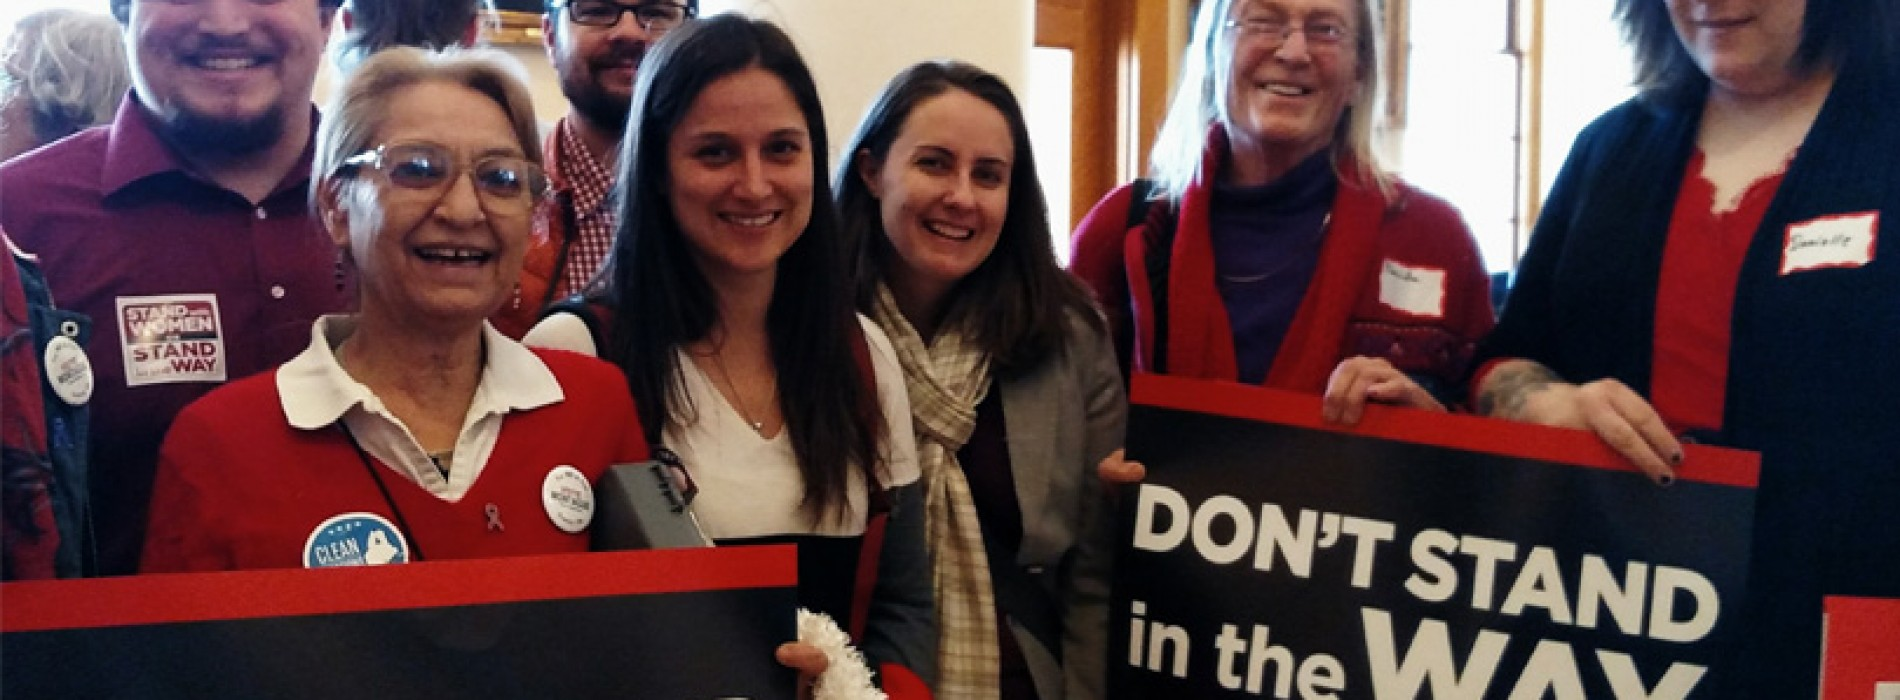 Maine women lobby for economic fairness, reproductive freedom